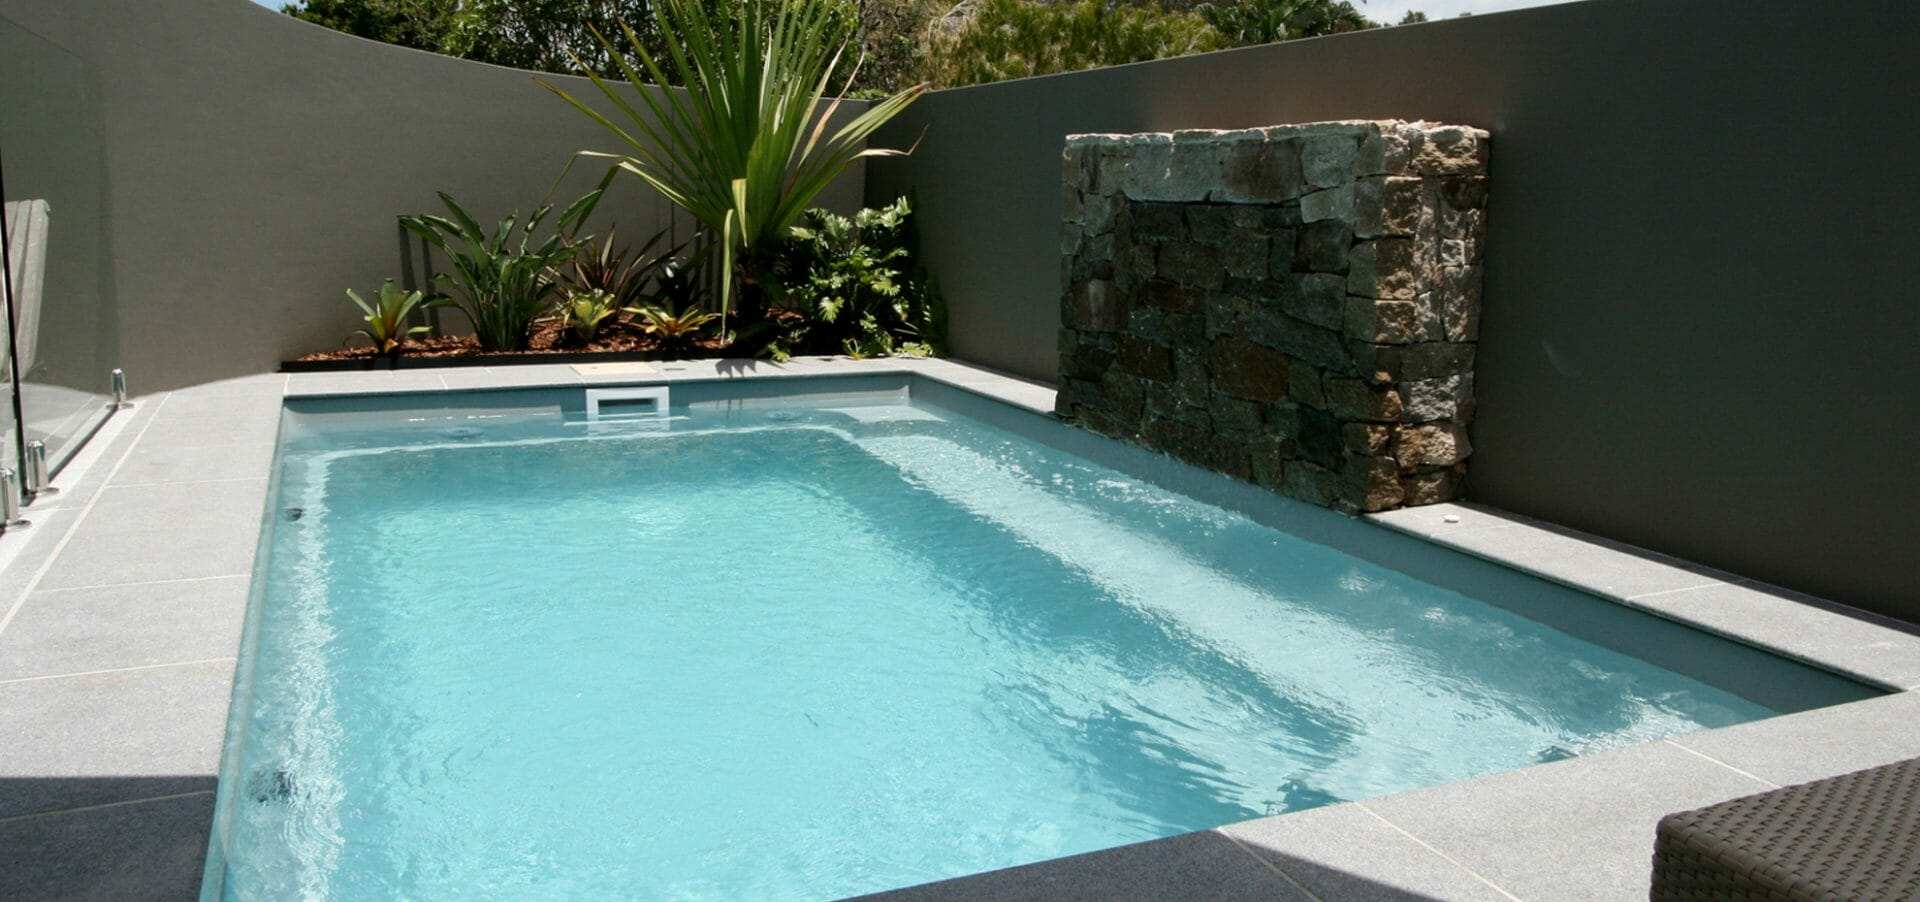 Rectangular shaped Harmony fibreglass pool with coping and water feature by Leisure Pools